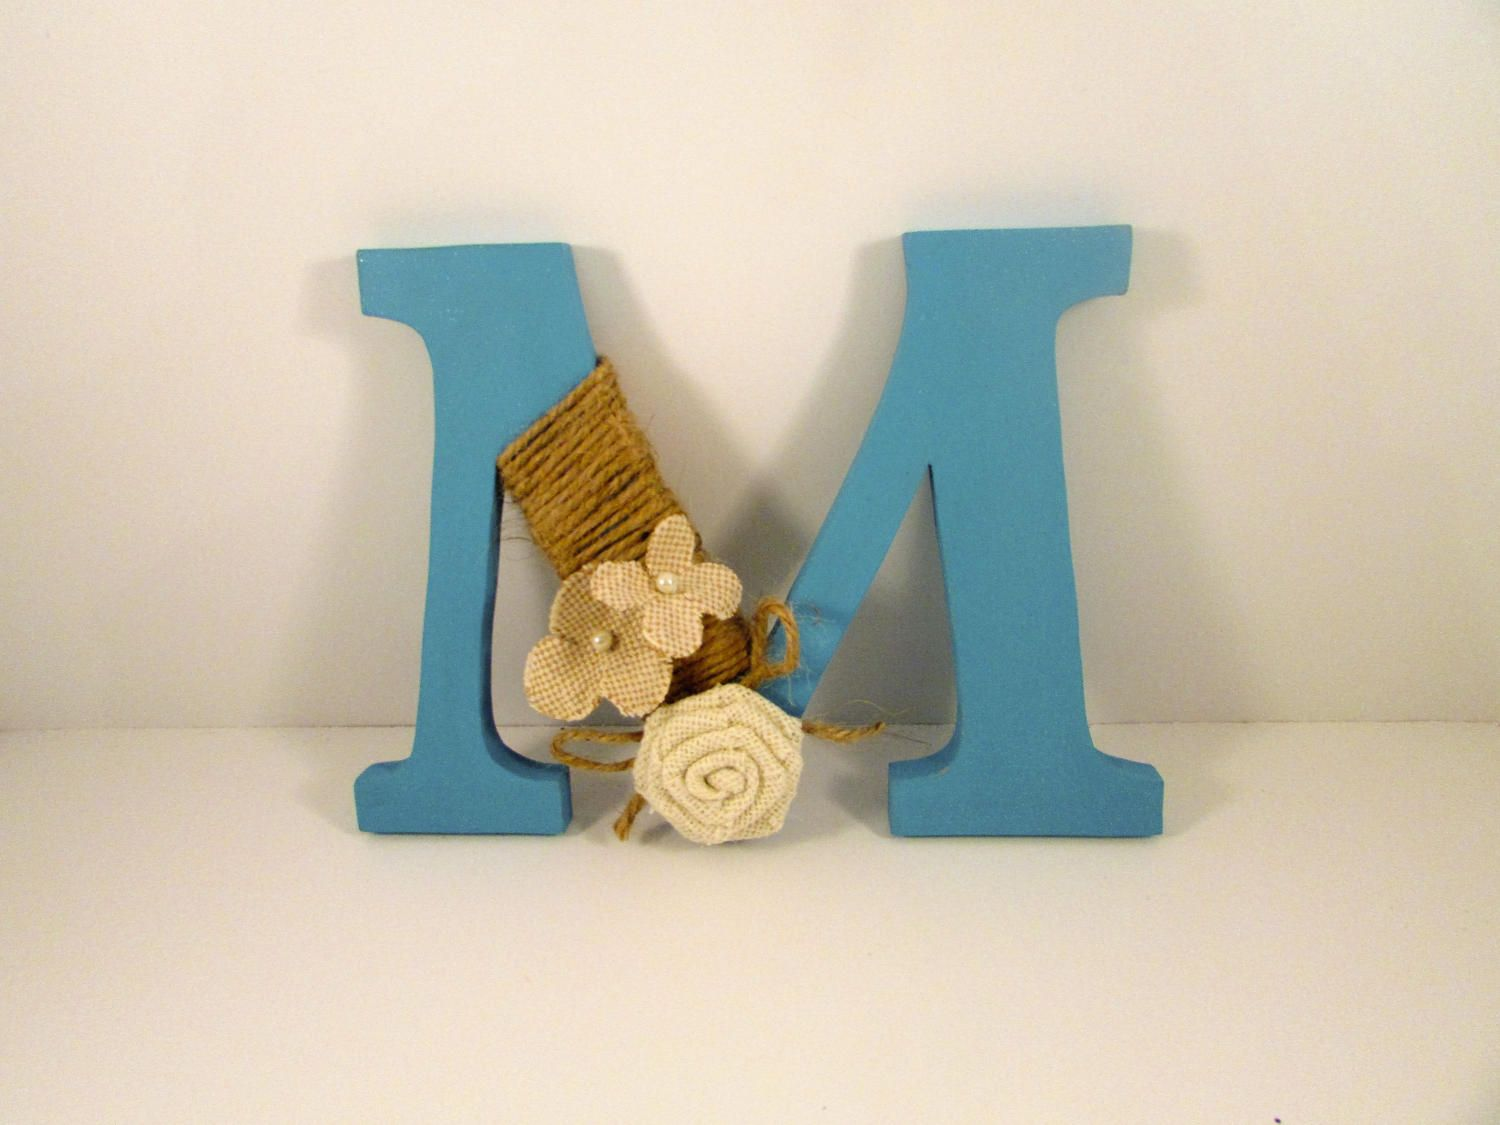 Custom Letter  Turquoise And Burlap Letter  Rustic Name Letter